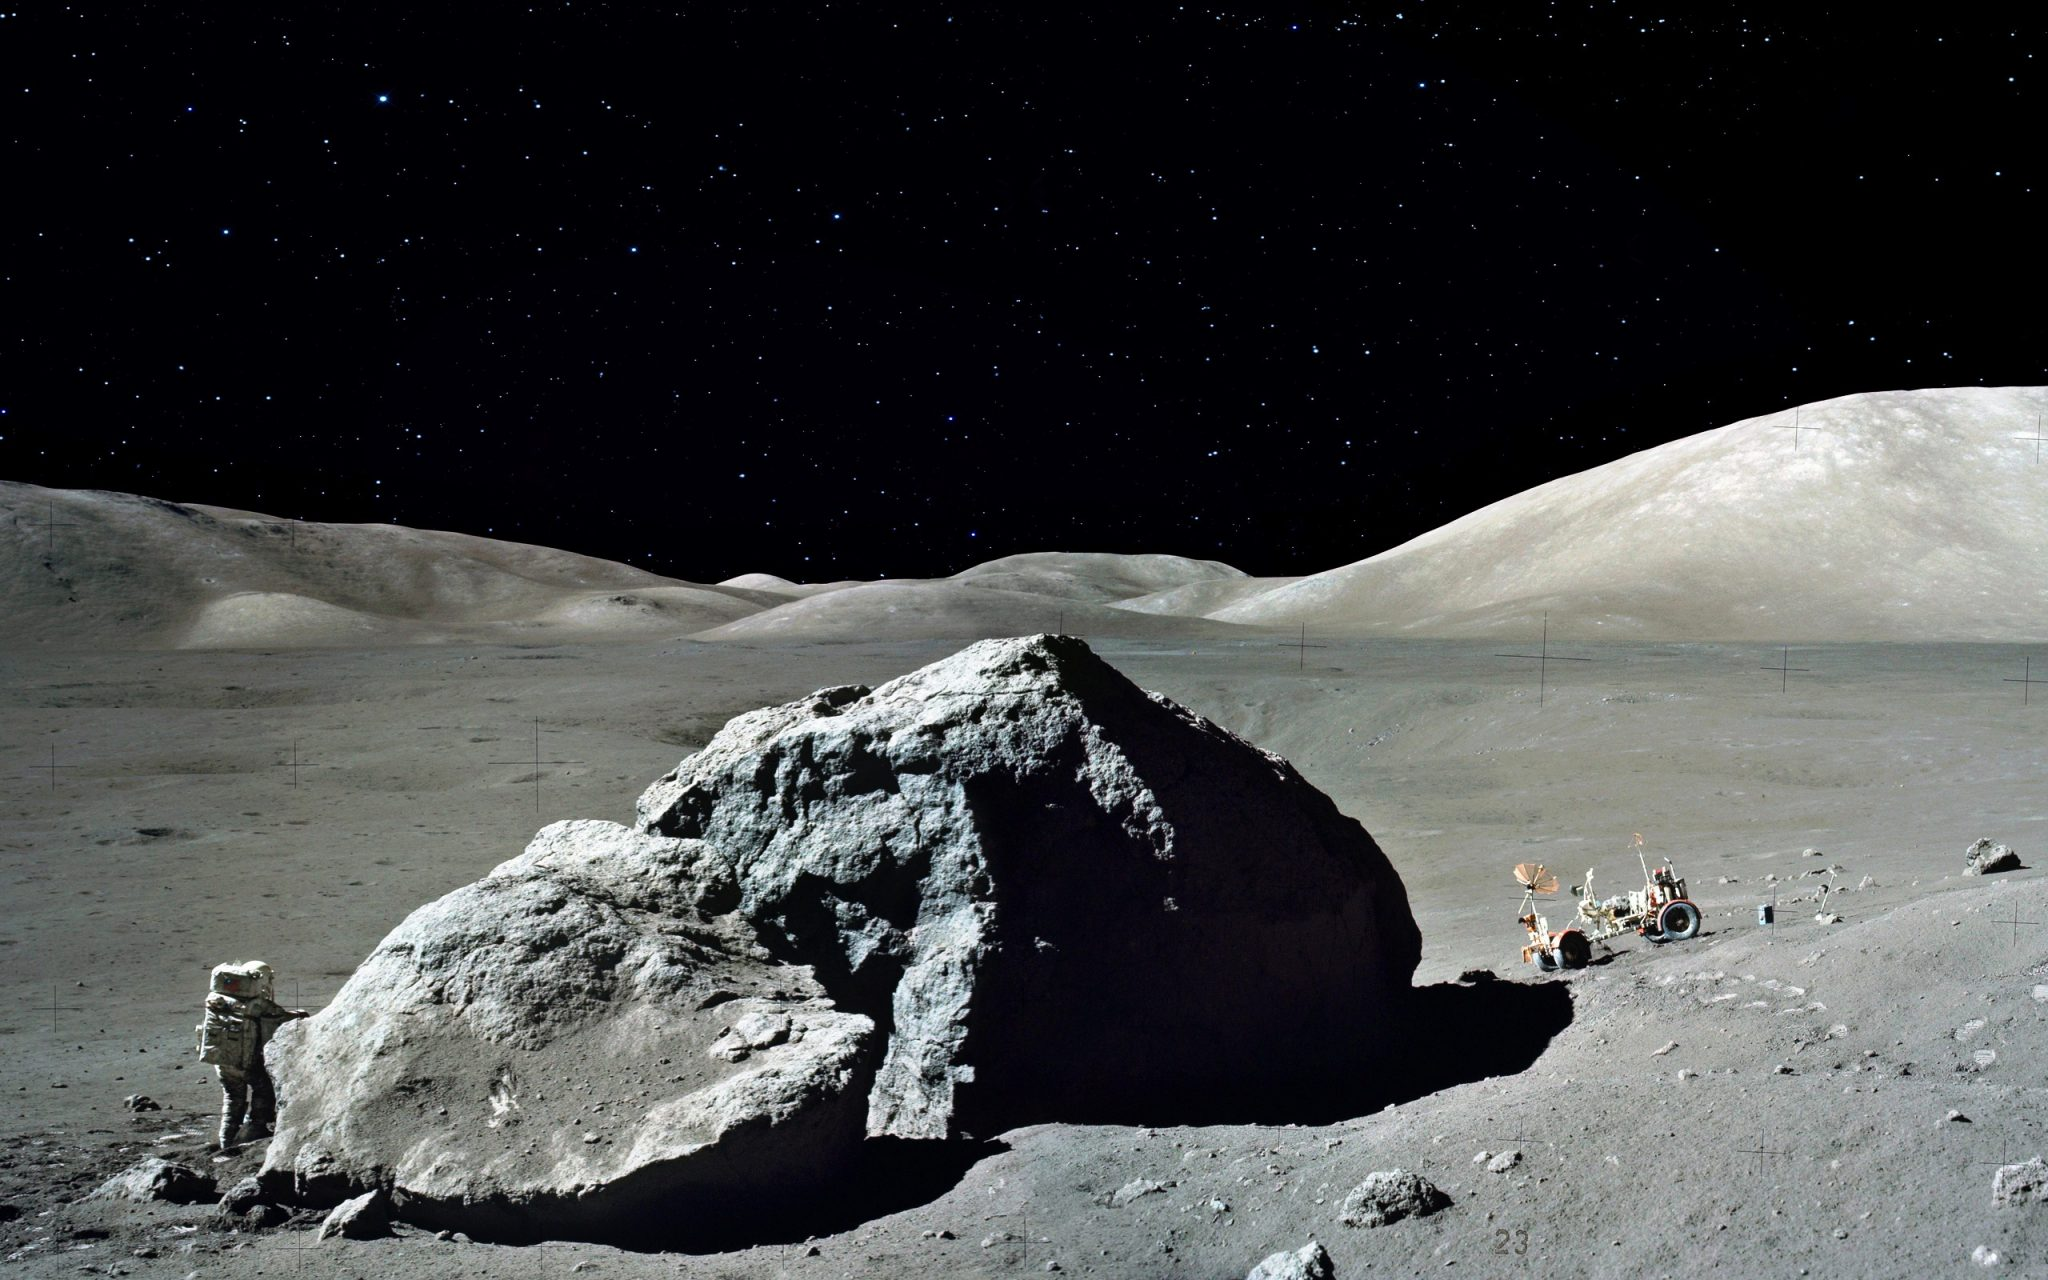 apollo missions wallpaper - photo #3